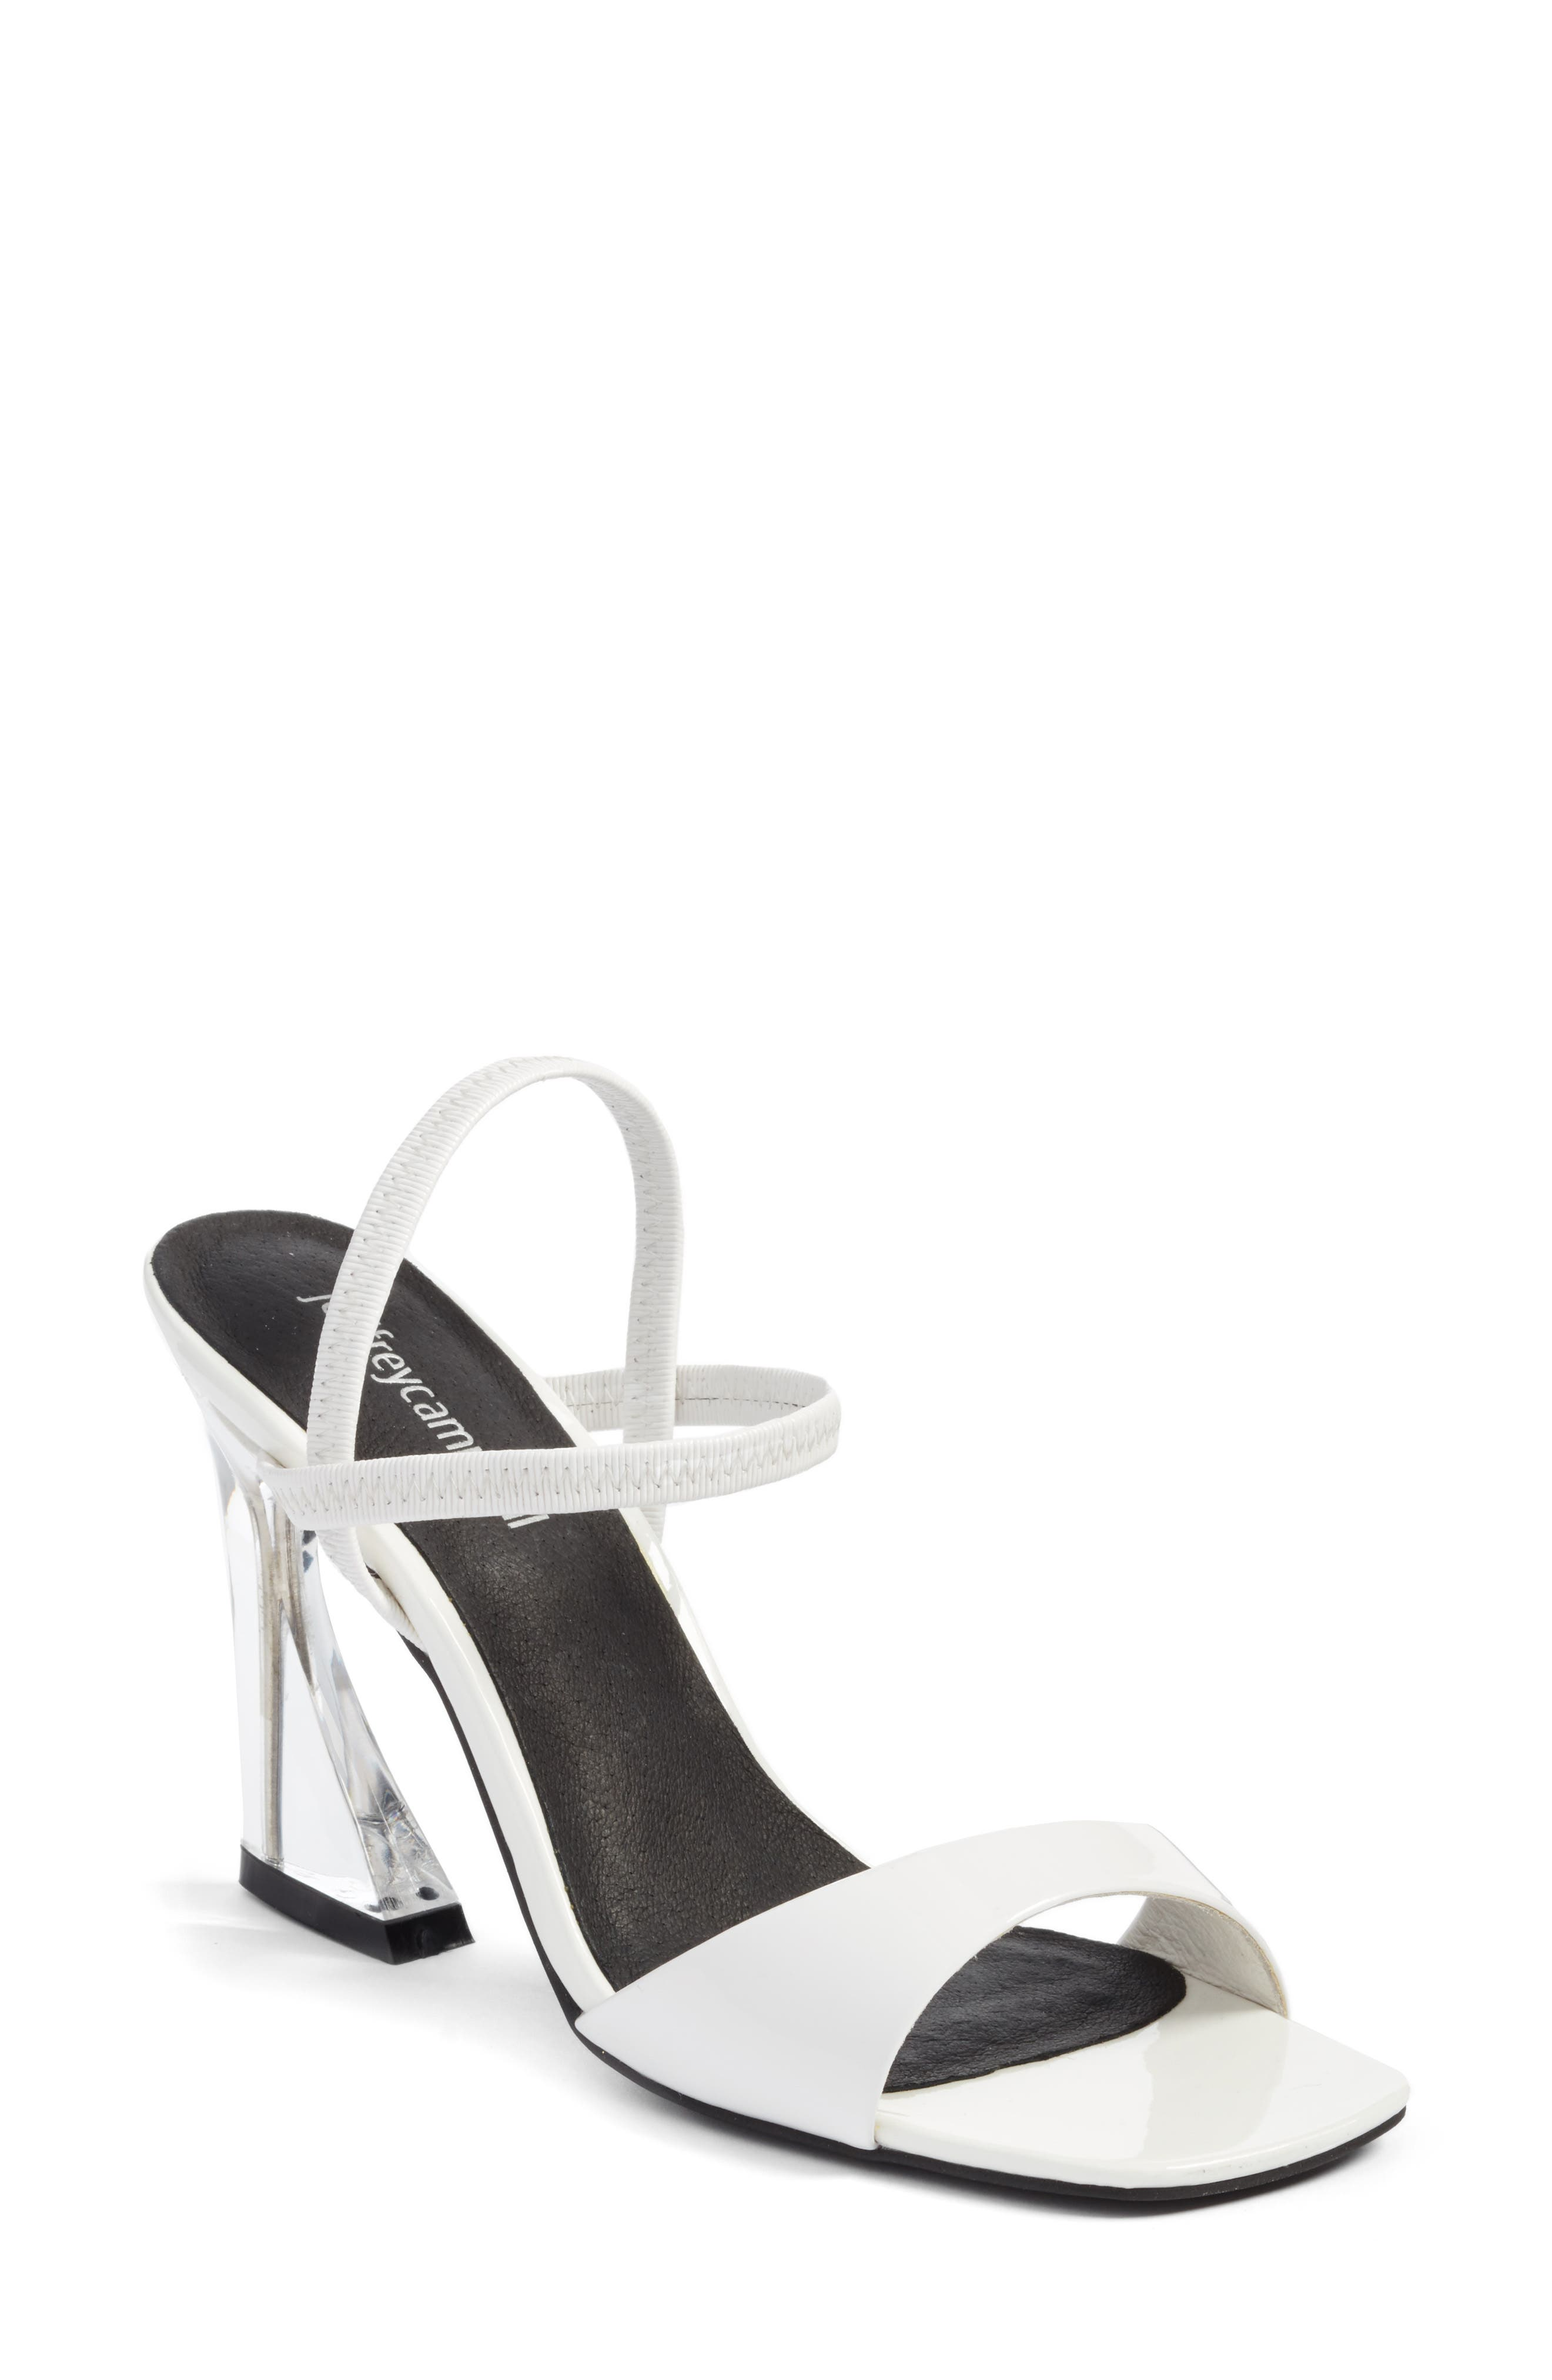 JEFFREY CAMPBELL,                             Carine Sandal,                             Main thumbnail 1, color,                             107